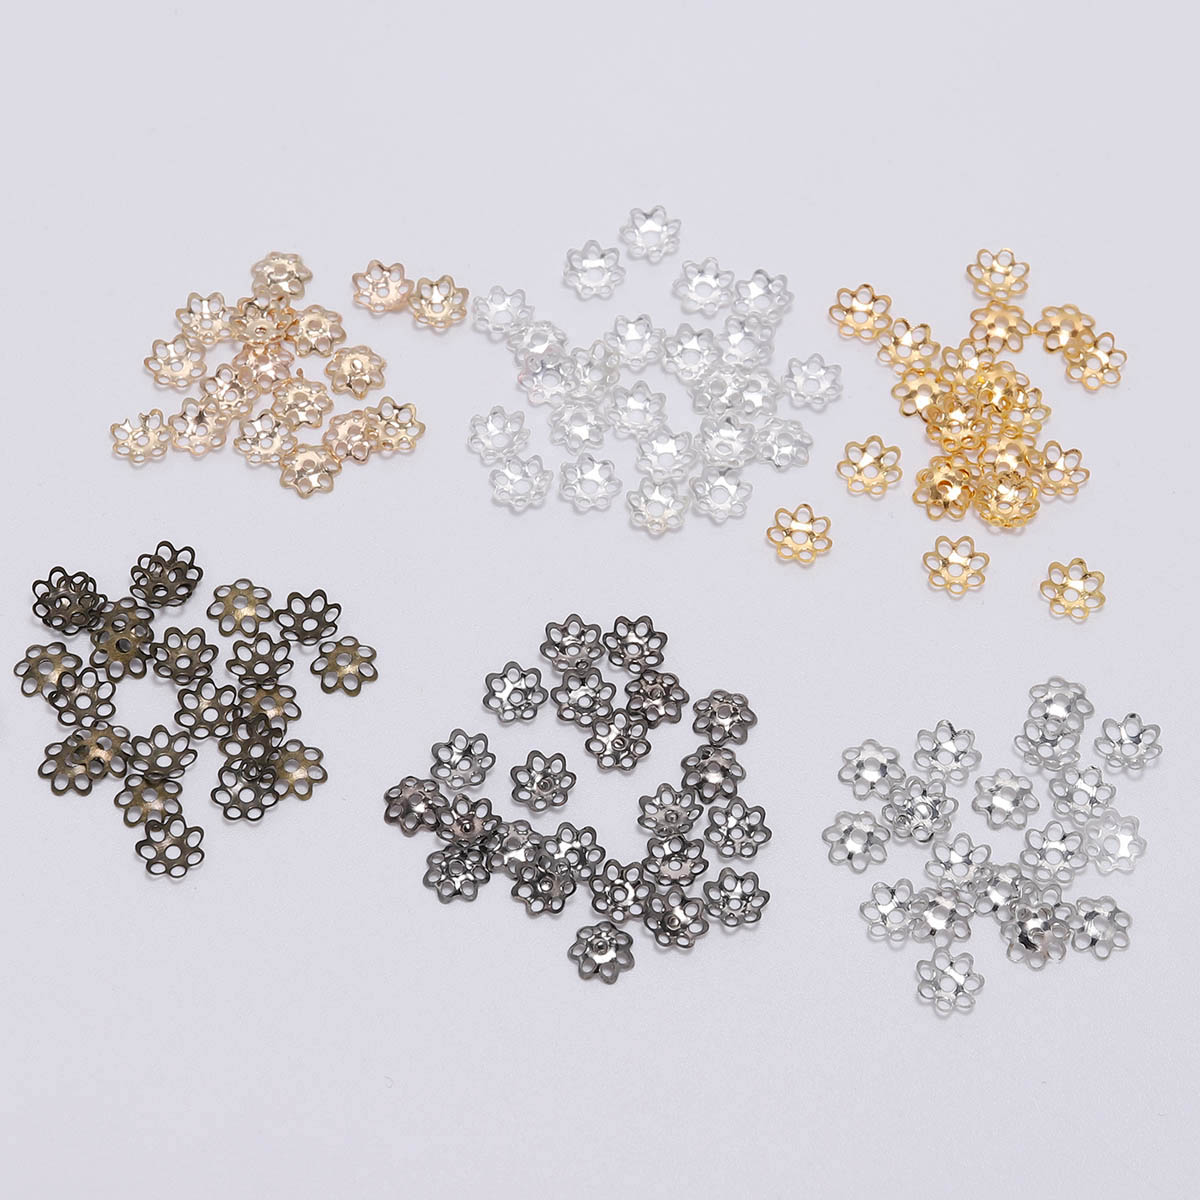 600pcs/Lot 6mm Hollow Flower Findings Cone End Beads Cap Filigree Loose Spacer Bead For DIY Jewelry Finding Making Accessories